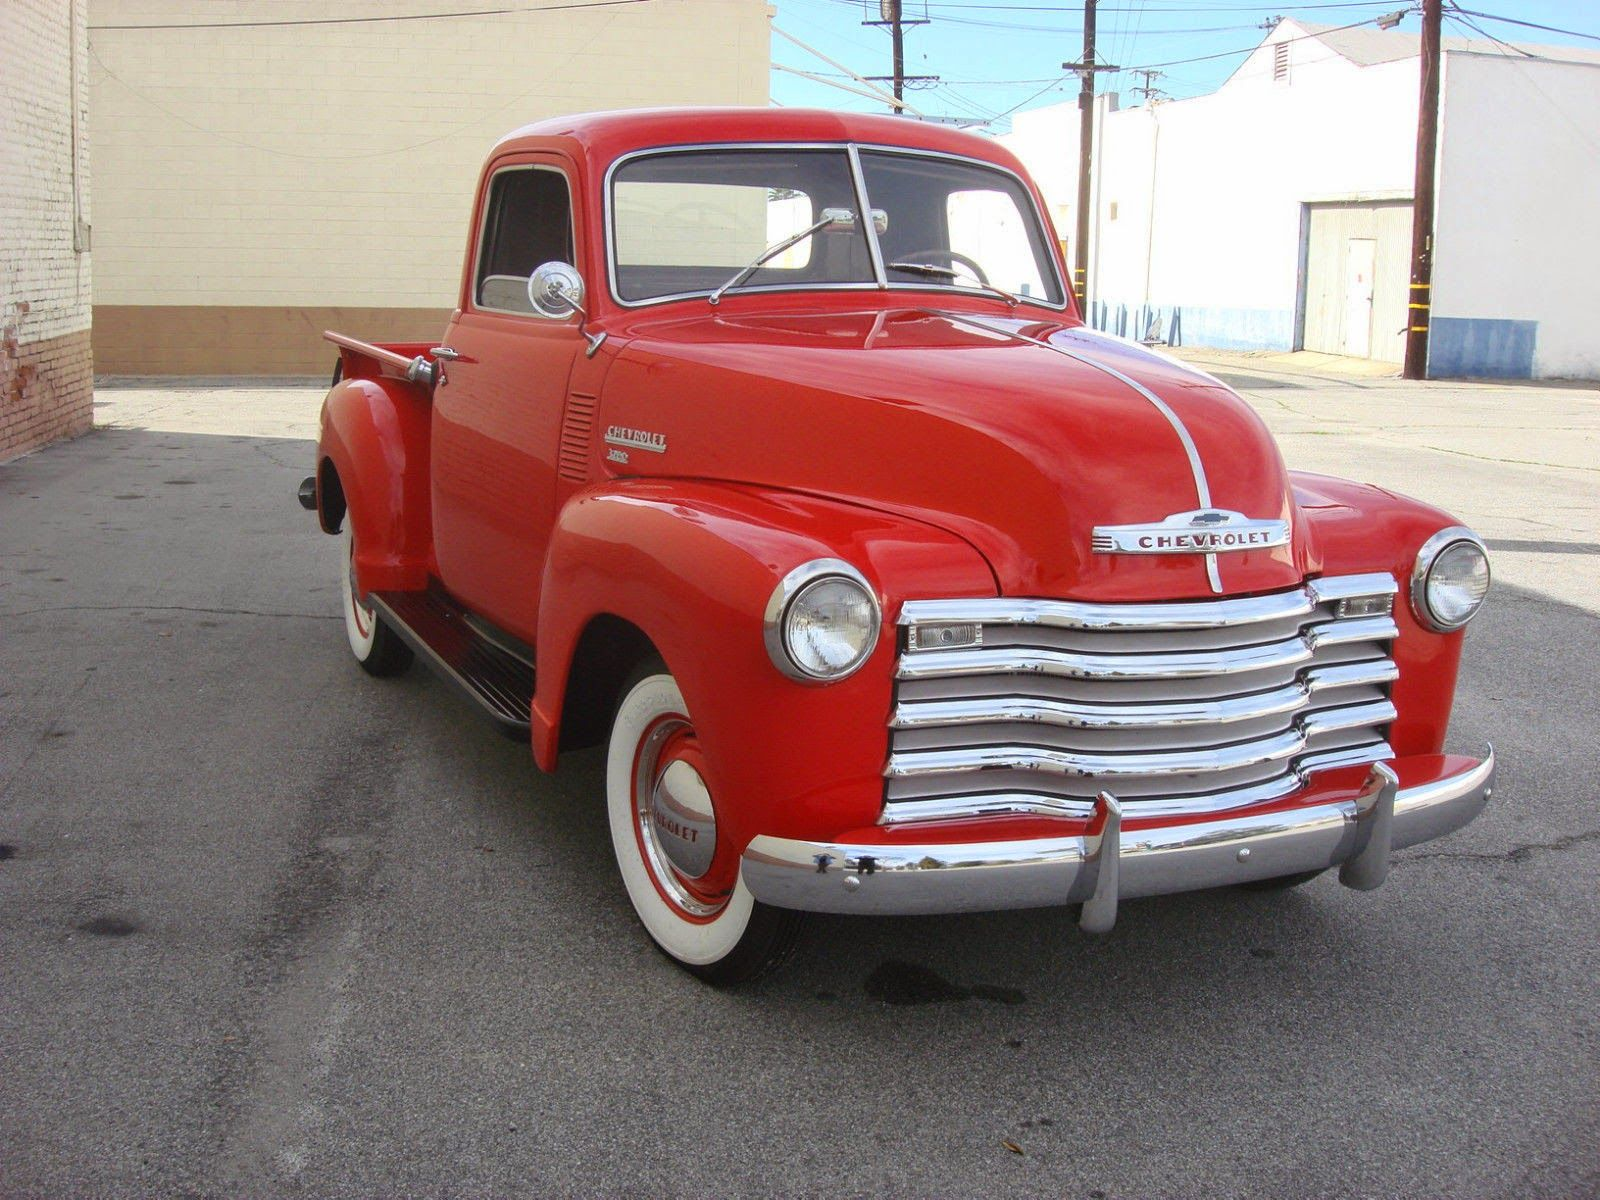 All American Classic Cars: 1950 Chevrolet 3100 Pickup Truck ...